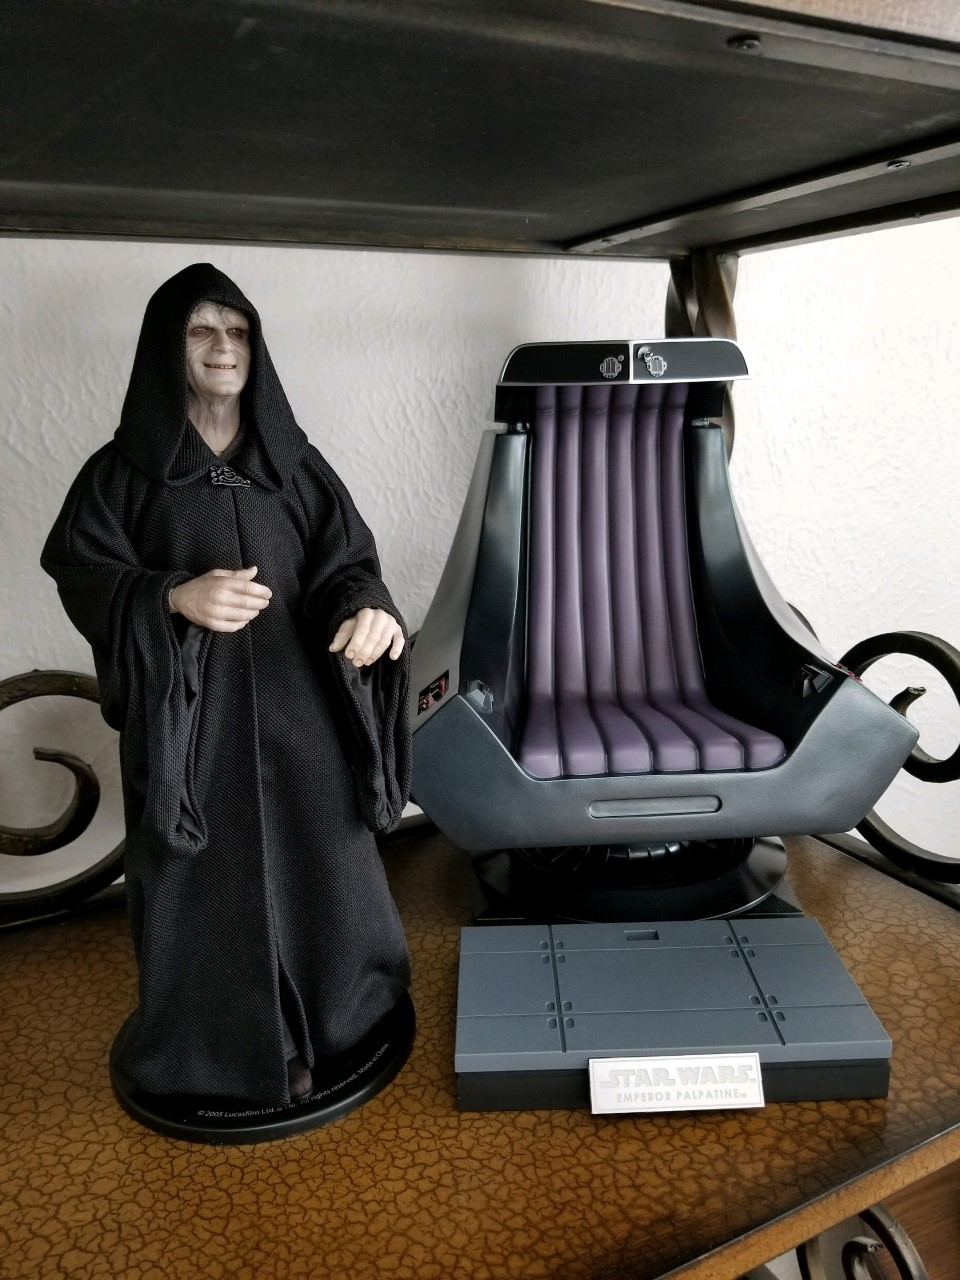 rotj - Hot Toys Star Wars Emperor Palpatine (Deluxe) Review - Page 2 Thumbn11